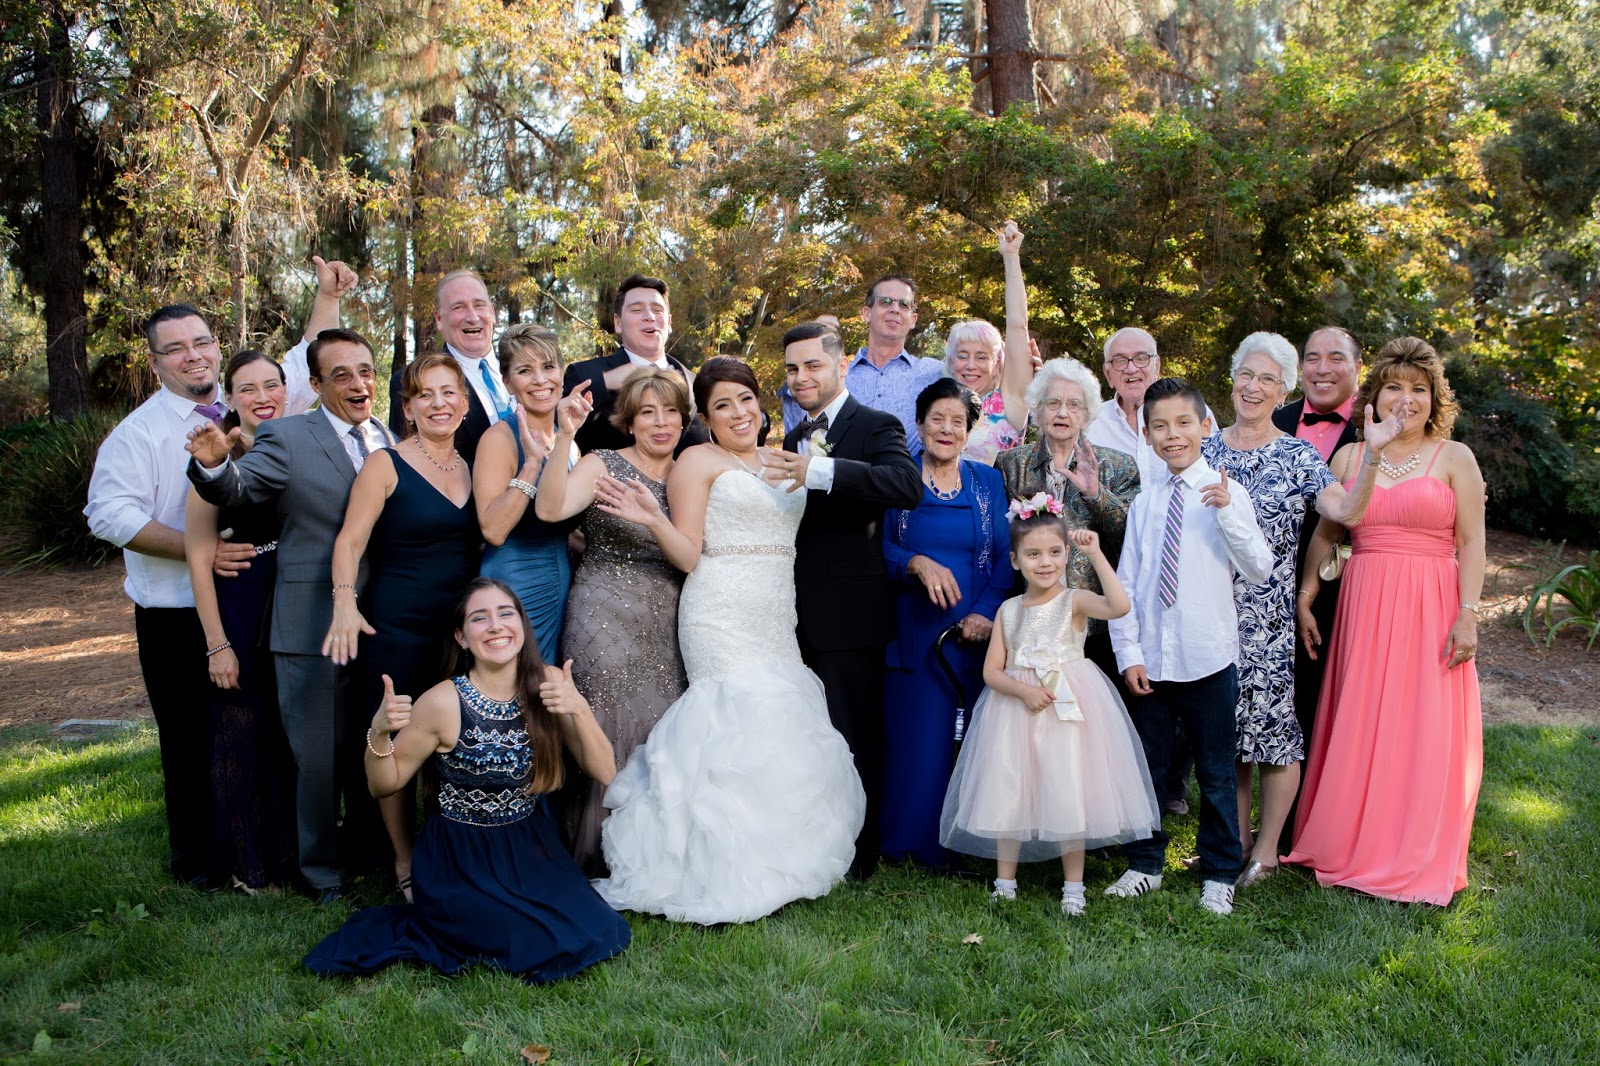 Bride and Groom celebrate with Bride's Family